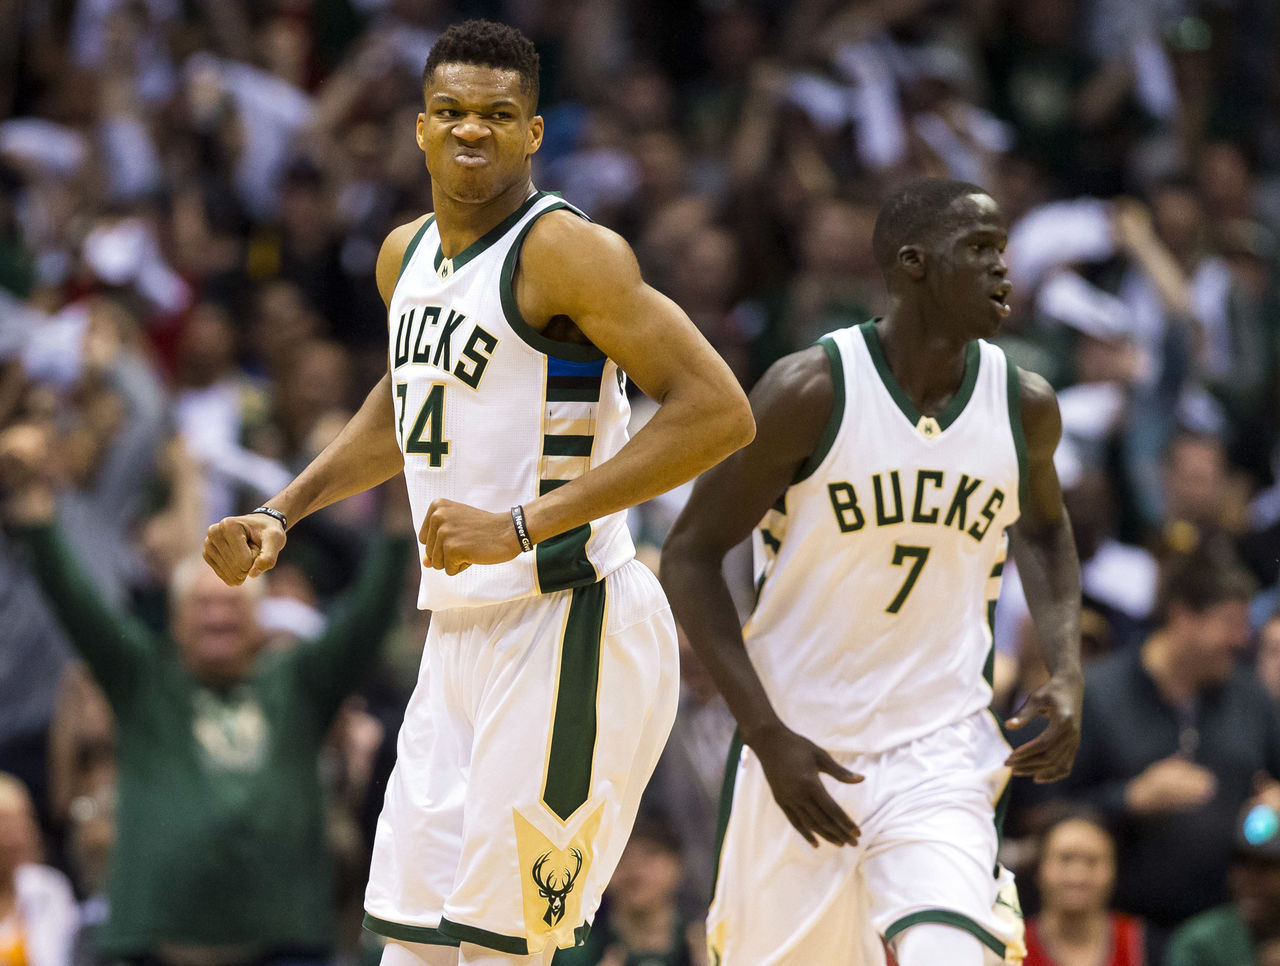 Cropped 2017 04 22t202509z 1085498176 nocid rtrmadp 3 nba playoffs toronto raptors at milwaukee bucks